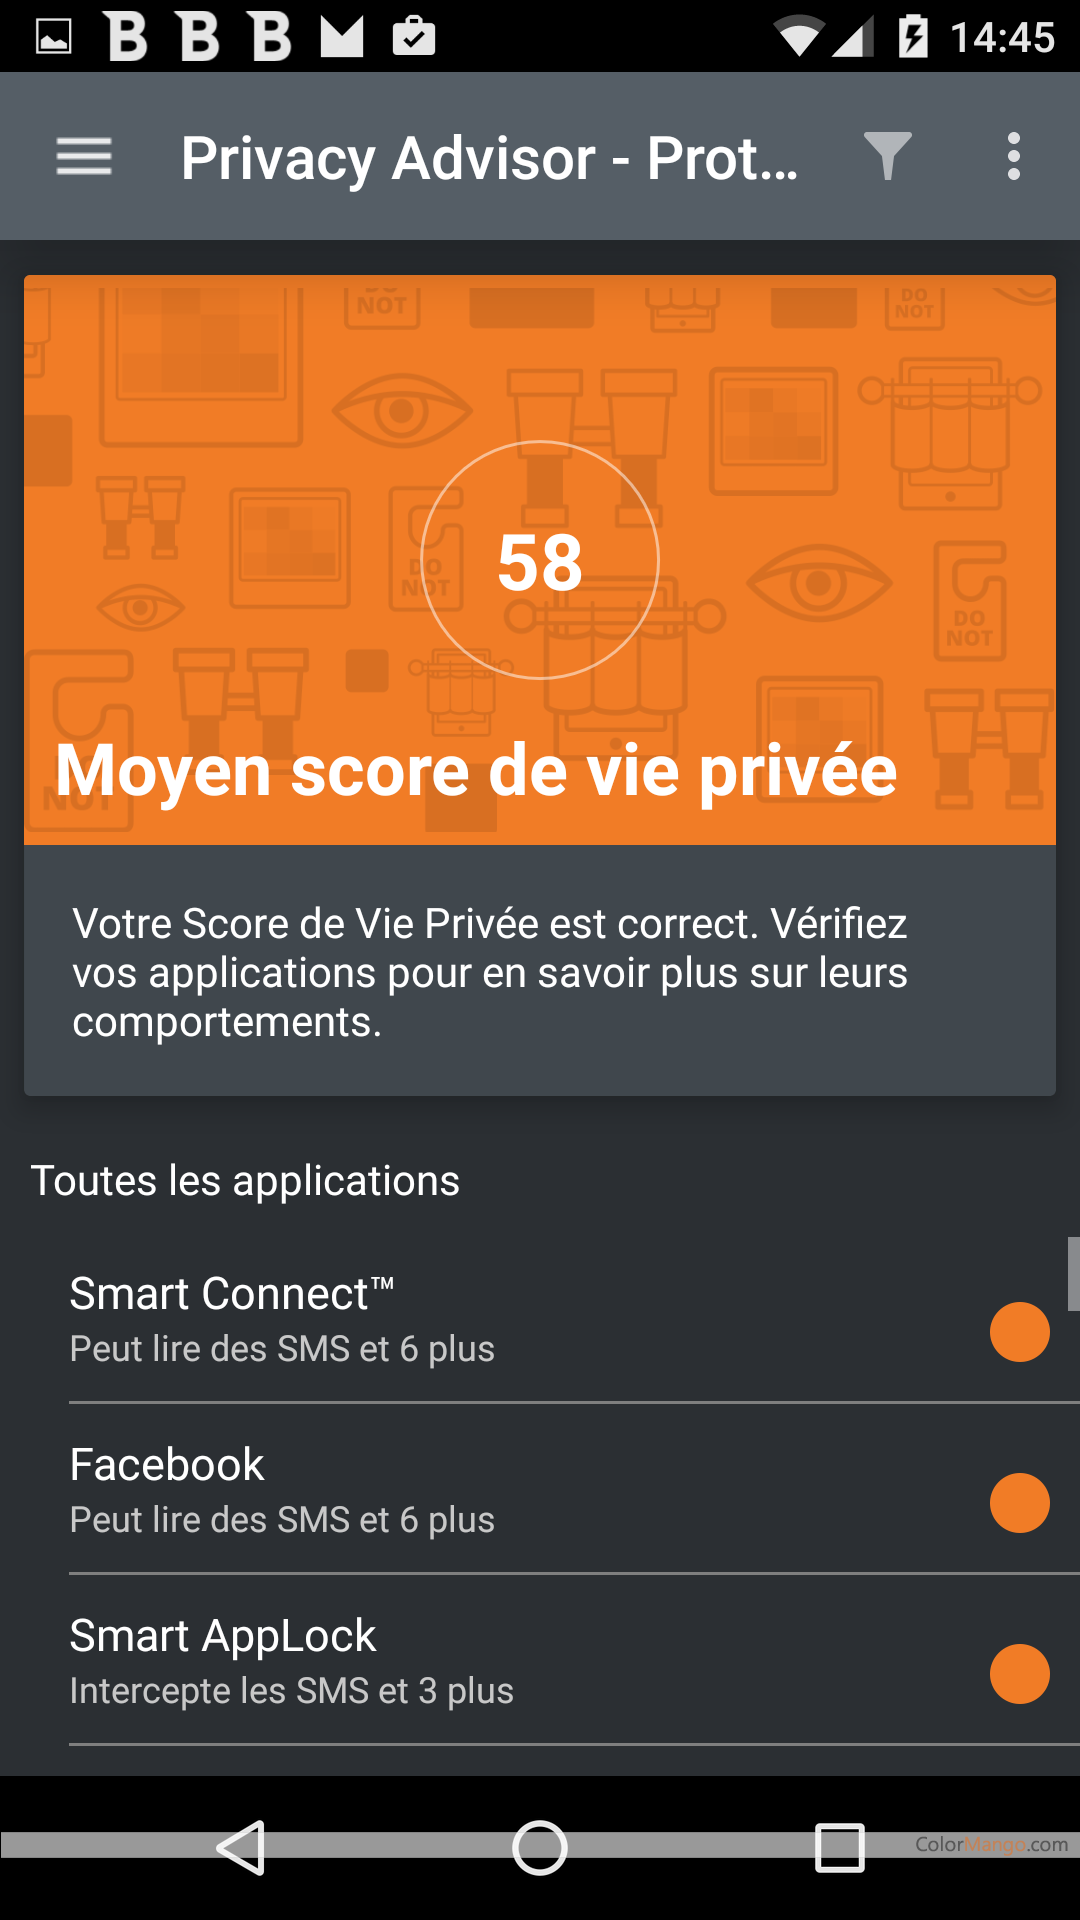 bitdefender mobile security achat en ligne prix essai gratuit evaluations et avis. Black Bedroom Furniture Sets. Home Design Ideas